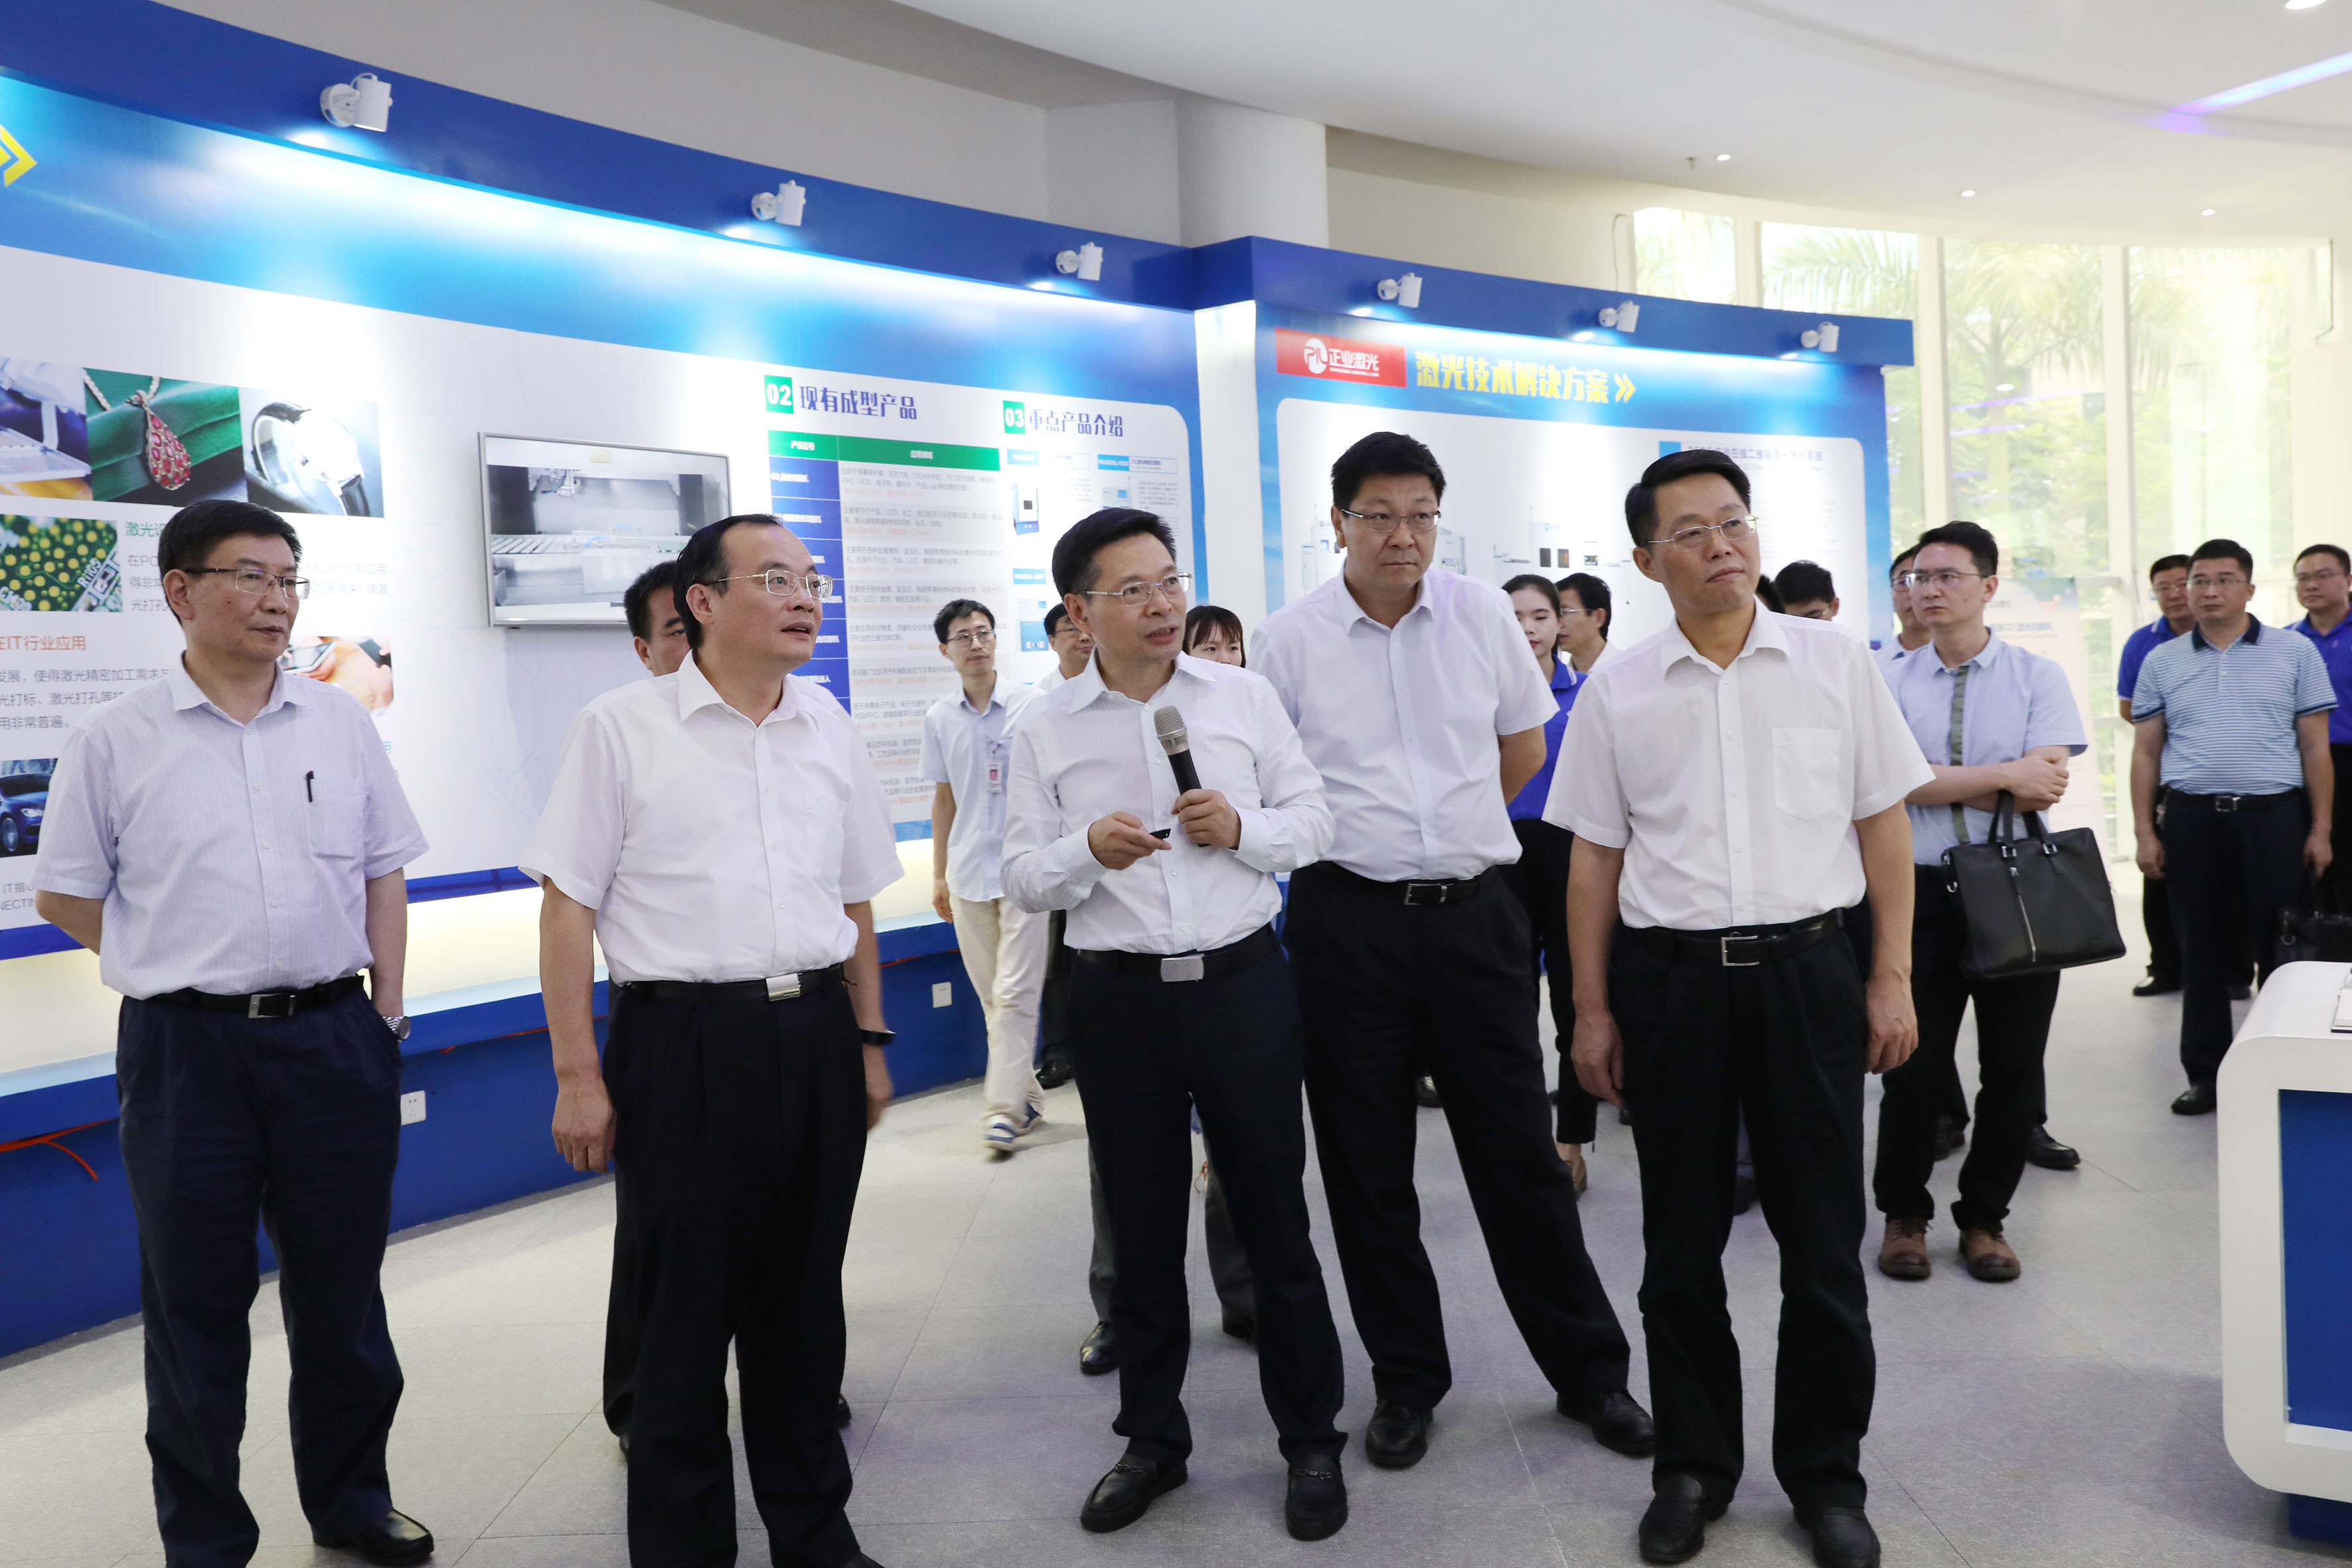 Chairman introduced precision inspection equipment series